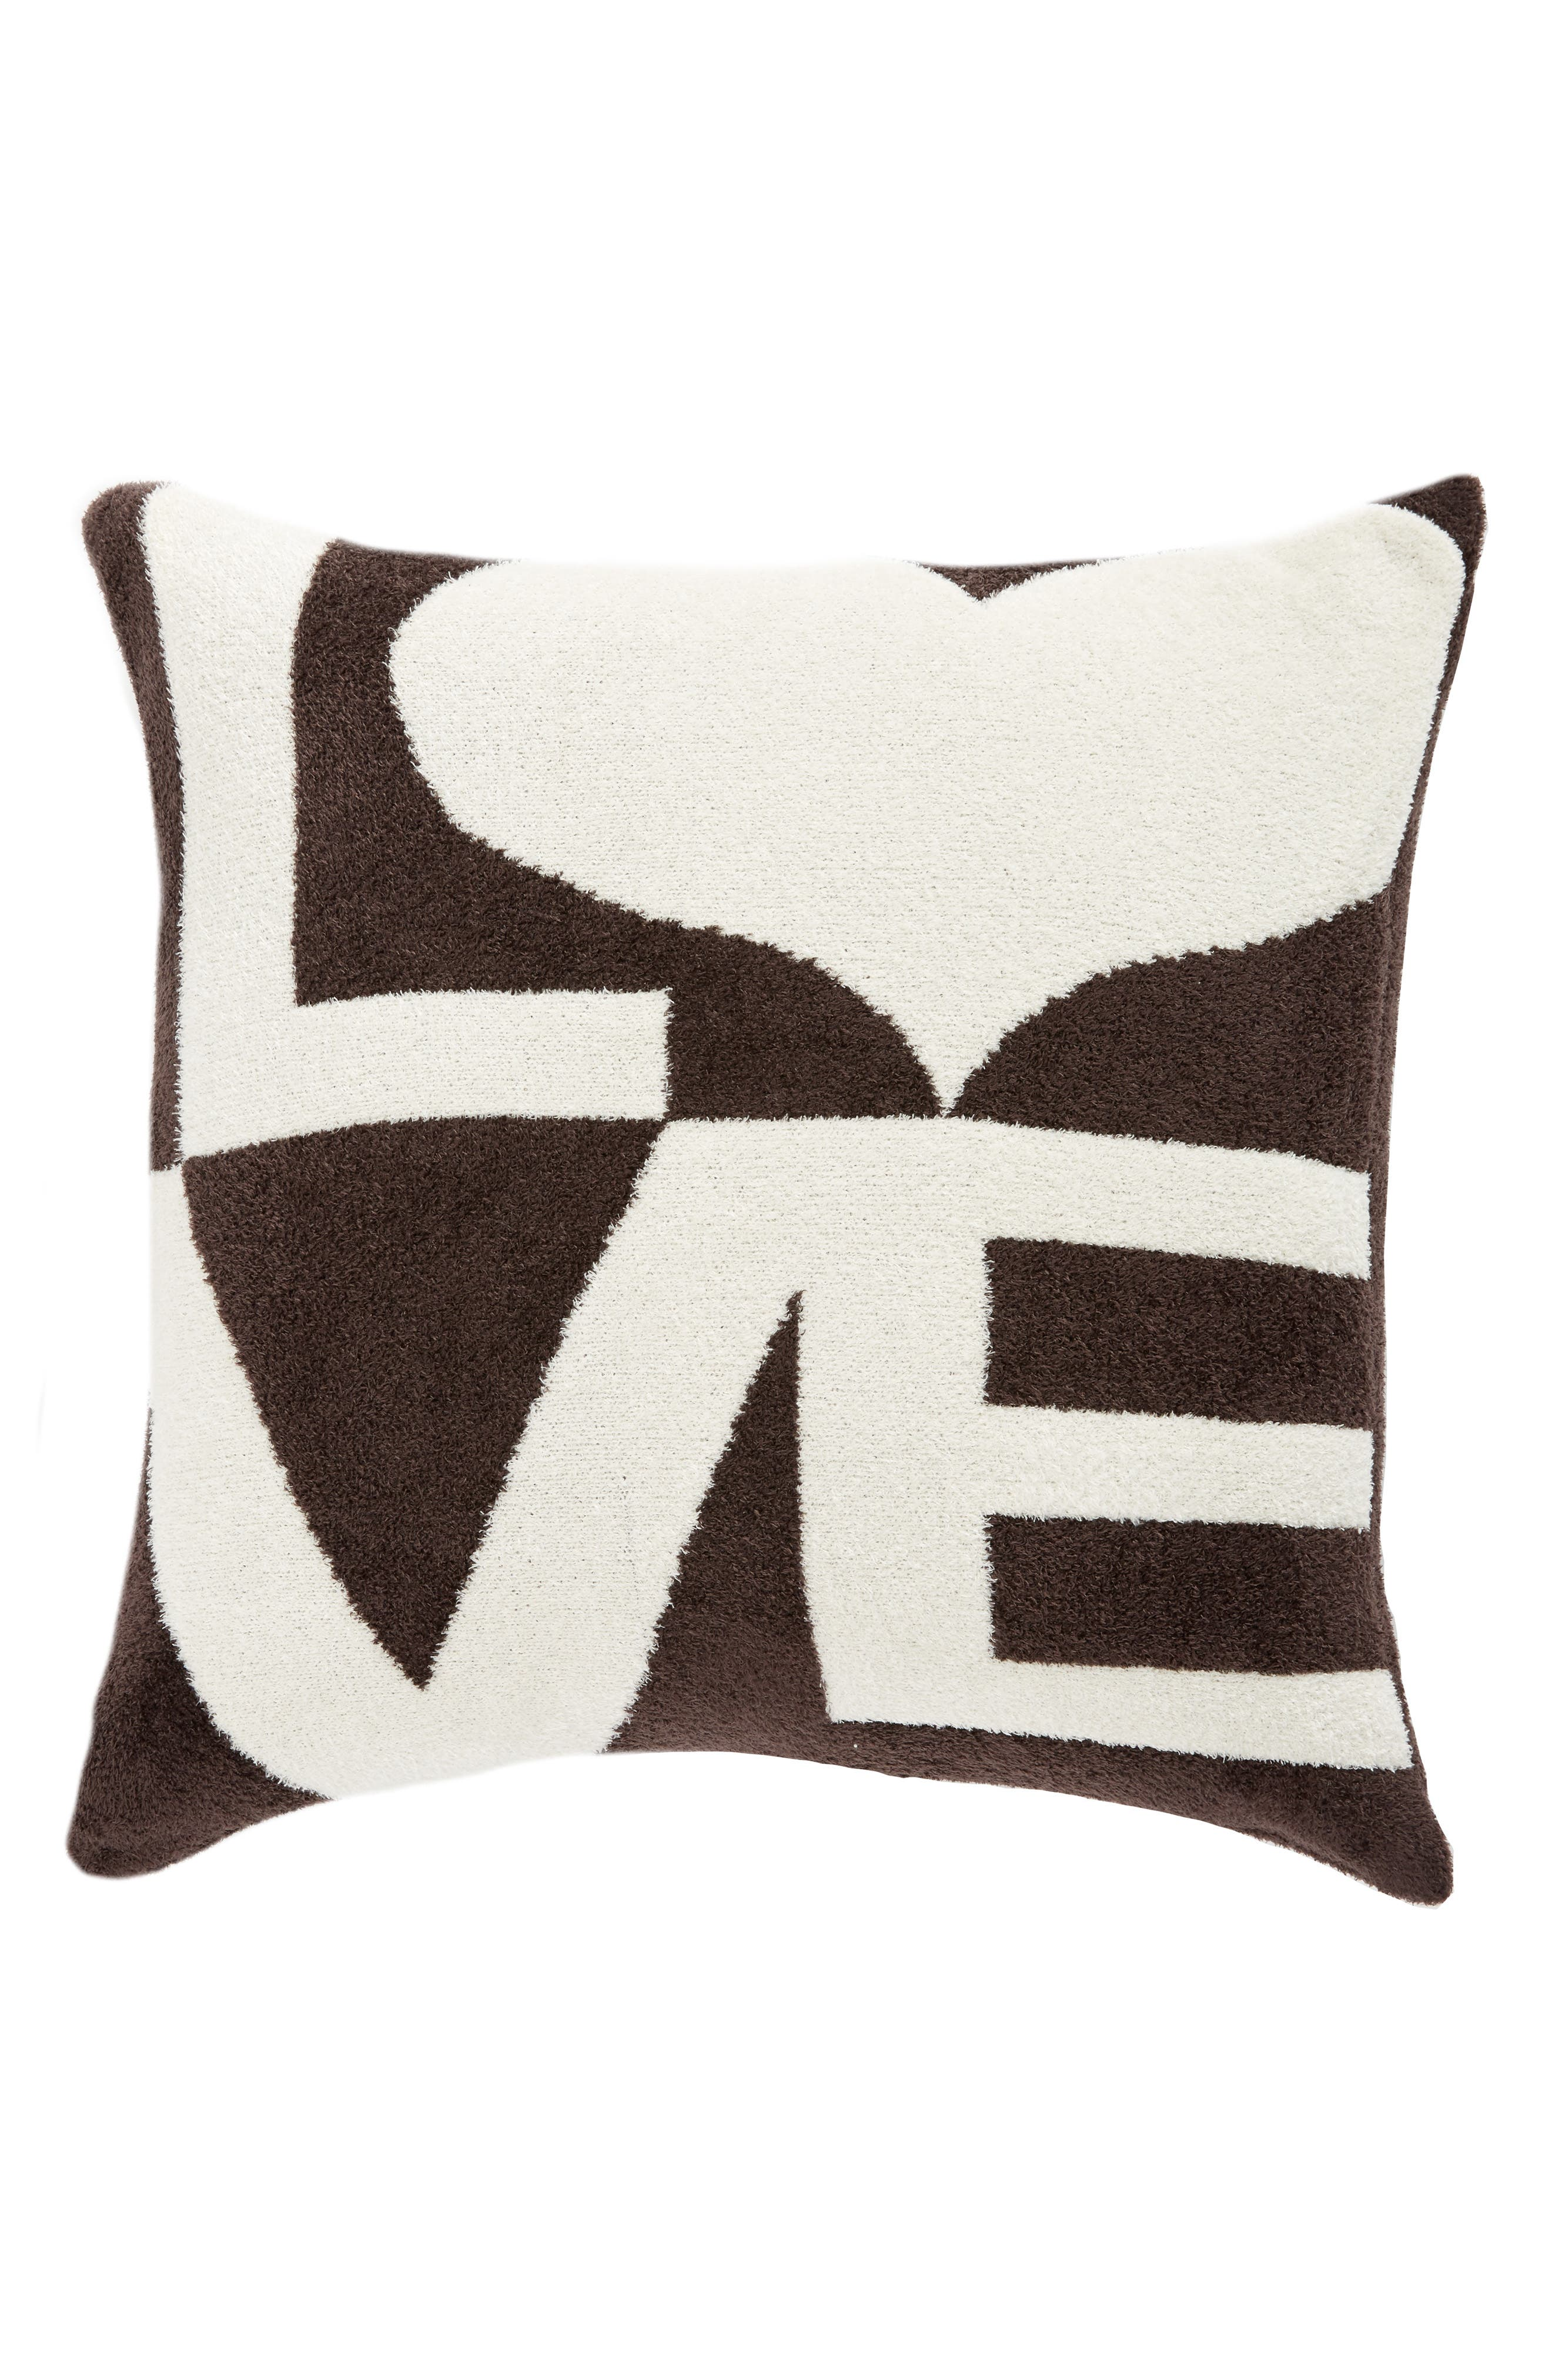 Main Image - Giraffe at Home Dolce Love Throw Pillow